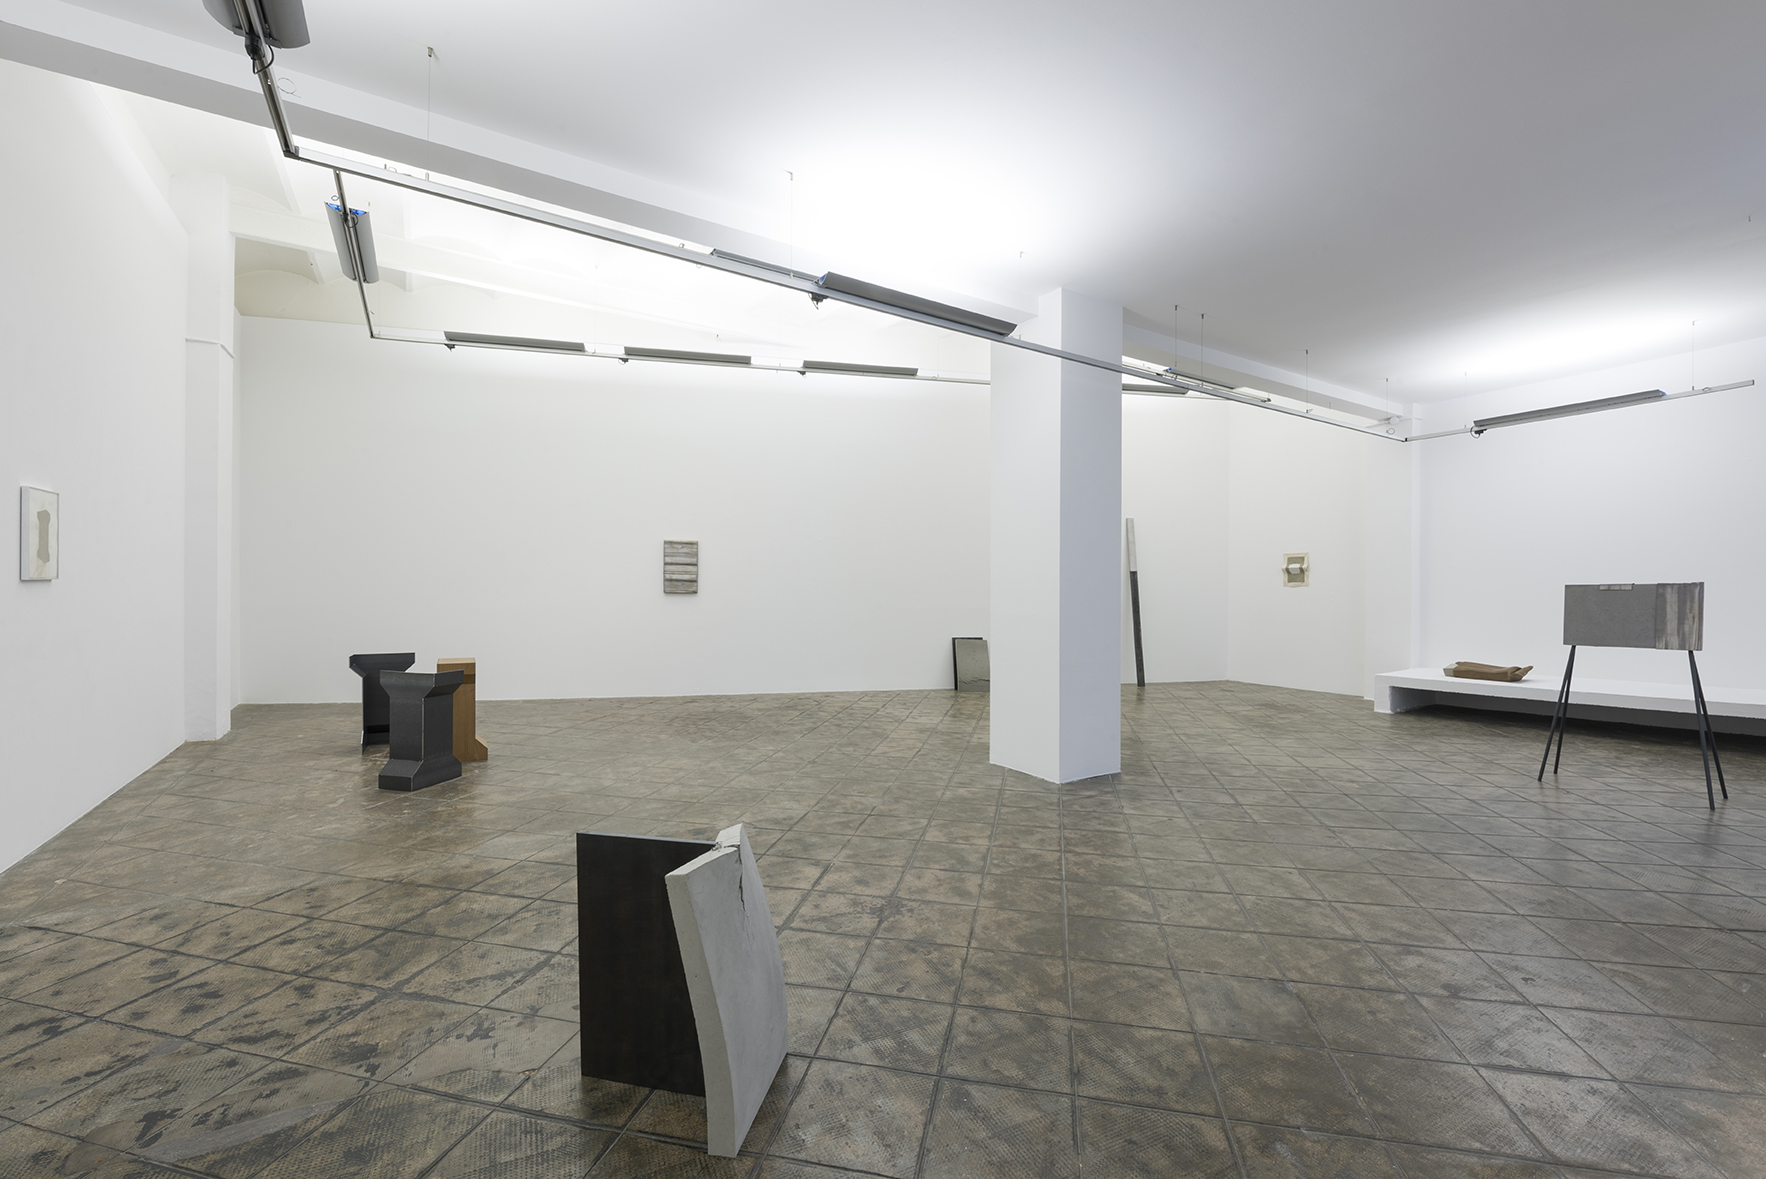 Installation view: Christoph Weber: On Fold, ProjecteSD |  | ProjecteSD